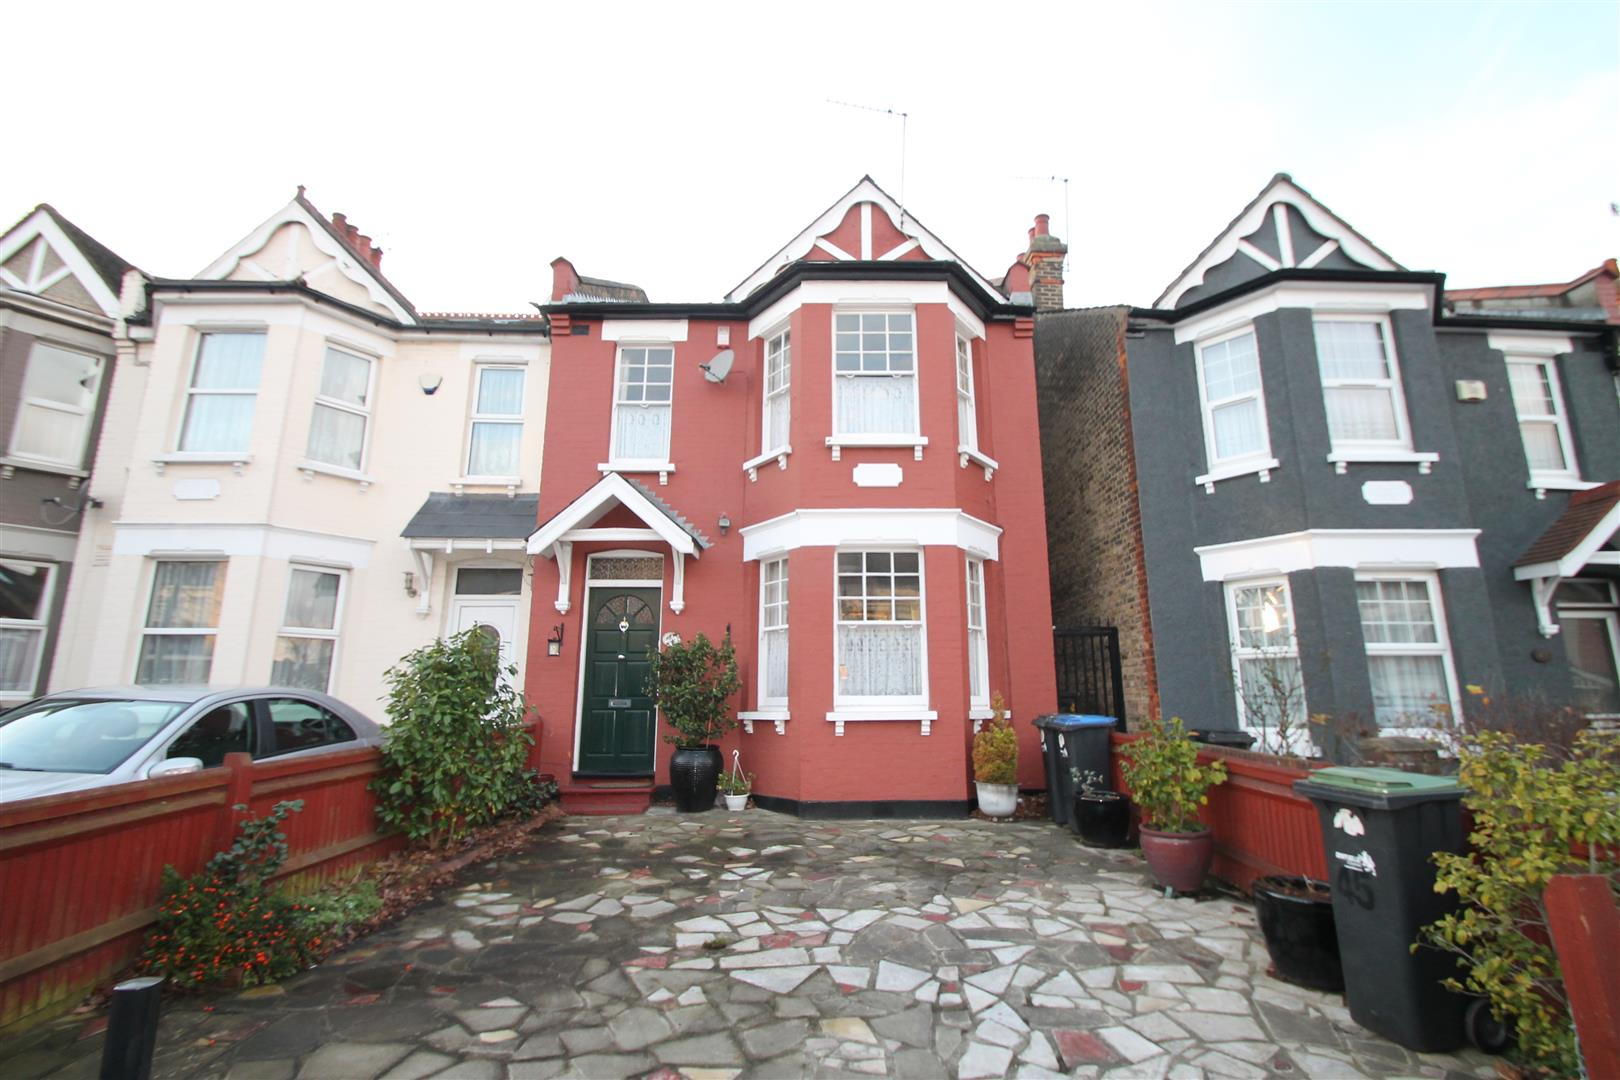 3 Bedrooms End Of Terrace House for sale in Hoppers Road, Winchmore Hill,